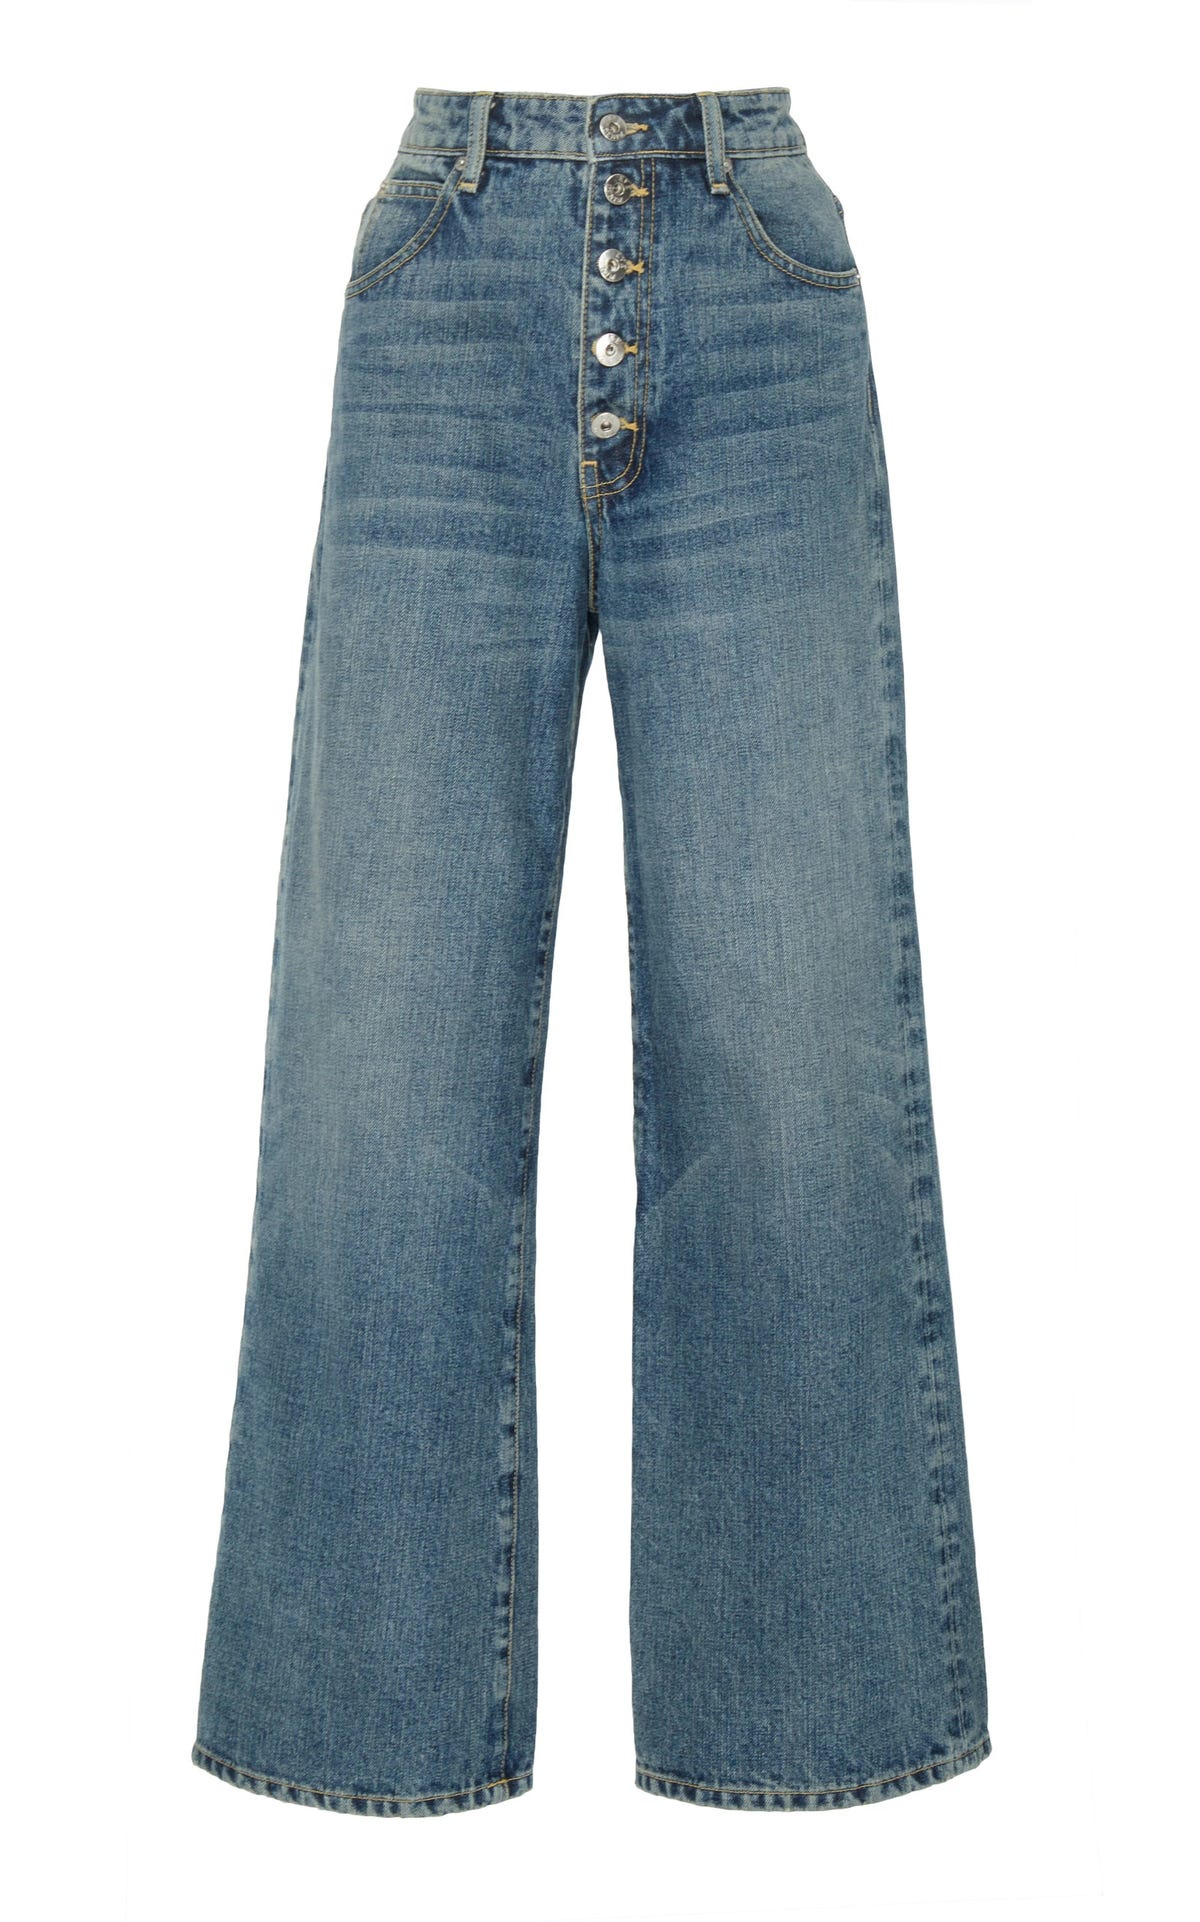 In Denimamp; Trends Be Huge Are That To Jean Going 2019 BoCedx